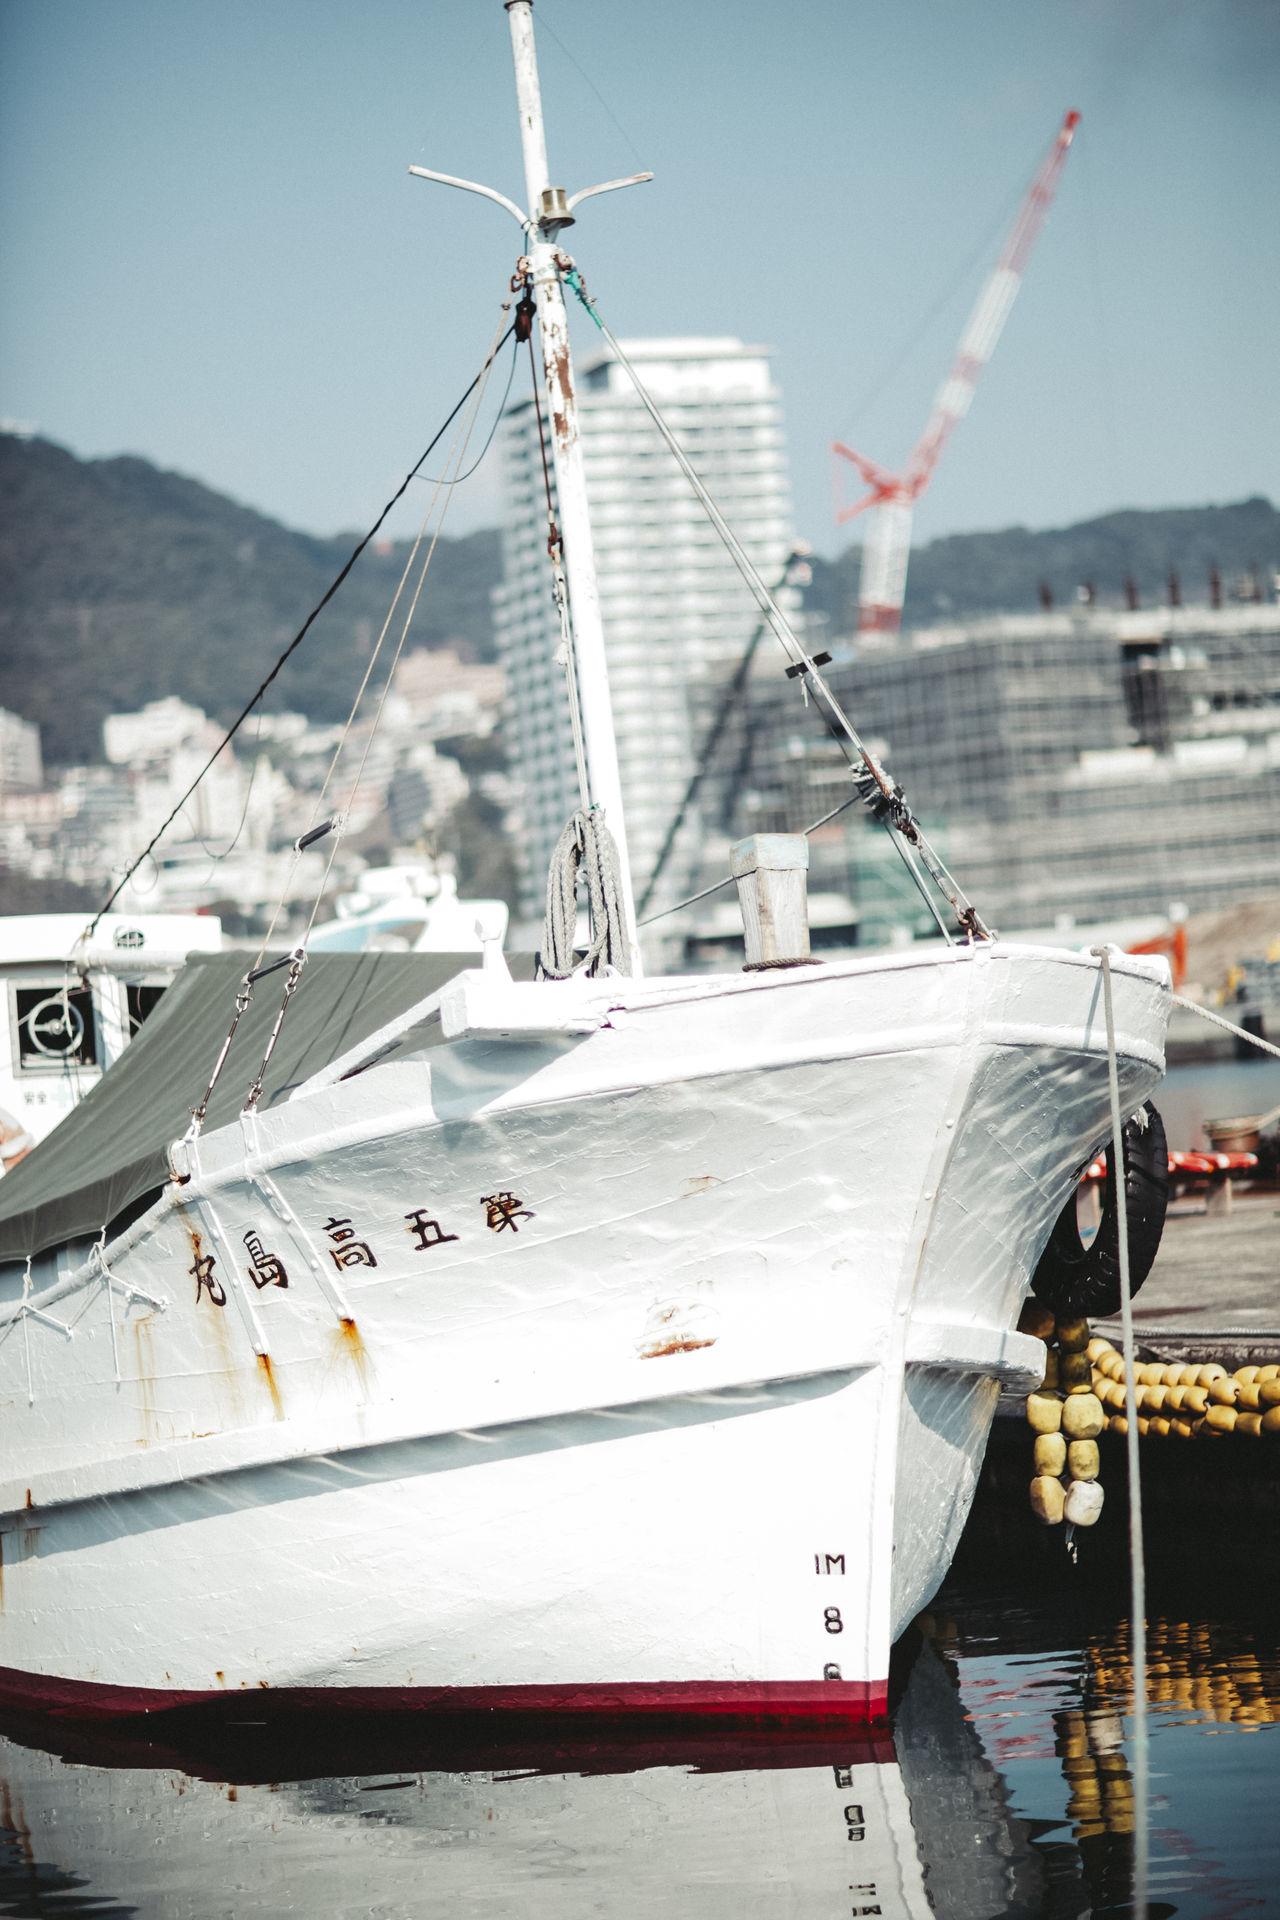 Bay Boat Day Japan Japan Photography Means Of Transport Ocean Outdoors Quay Sea Ship Spring Summer Transportation